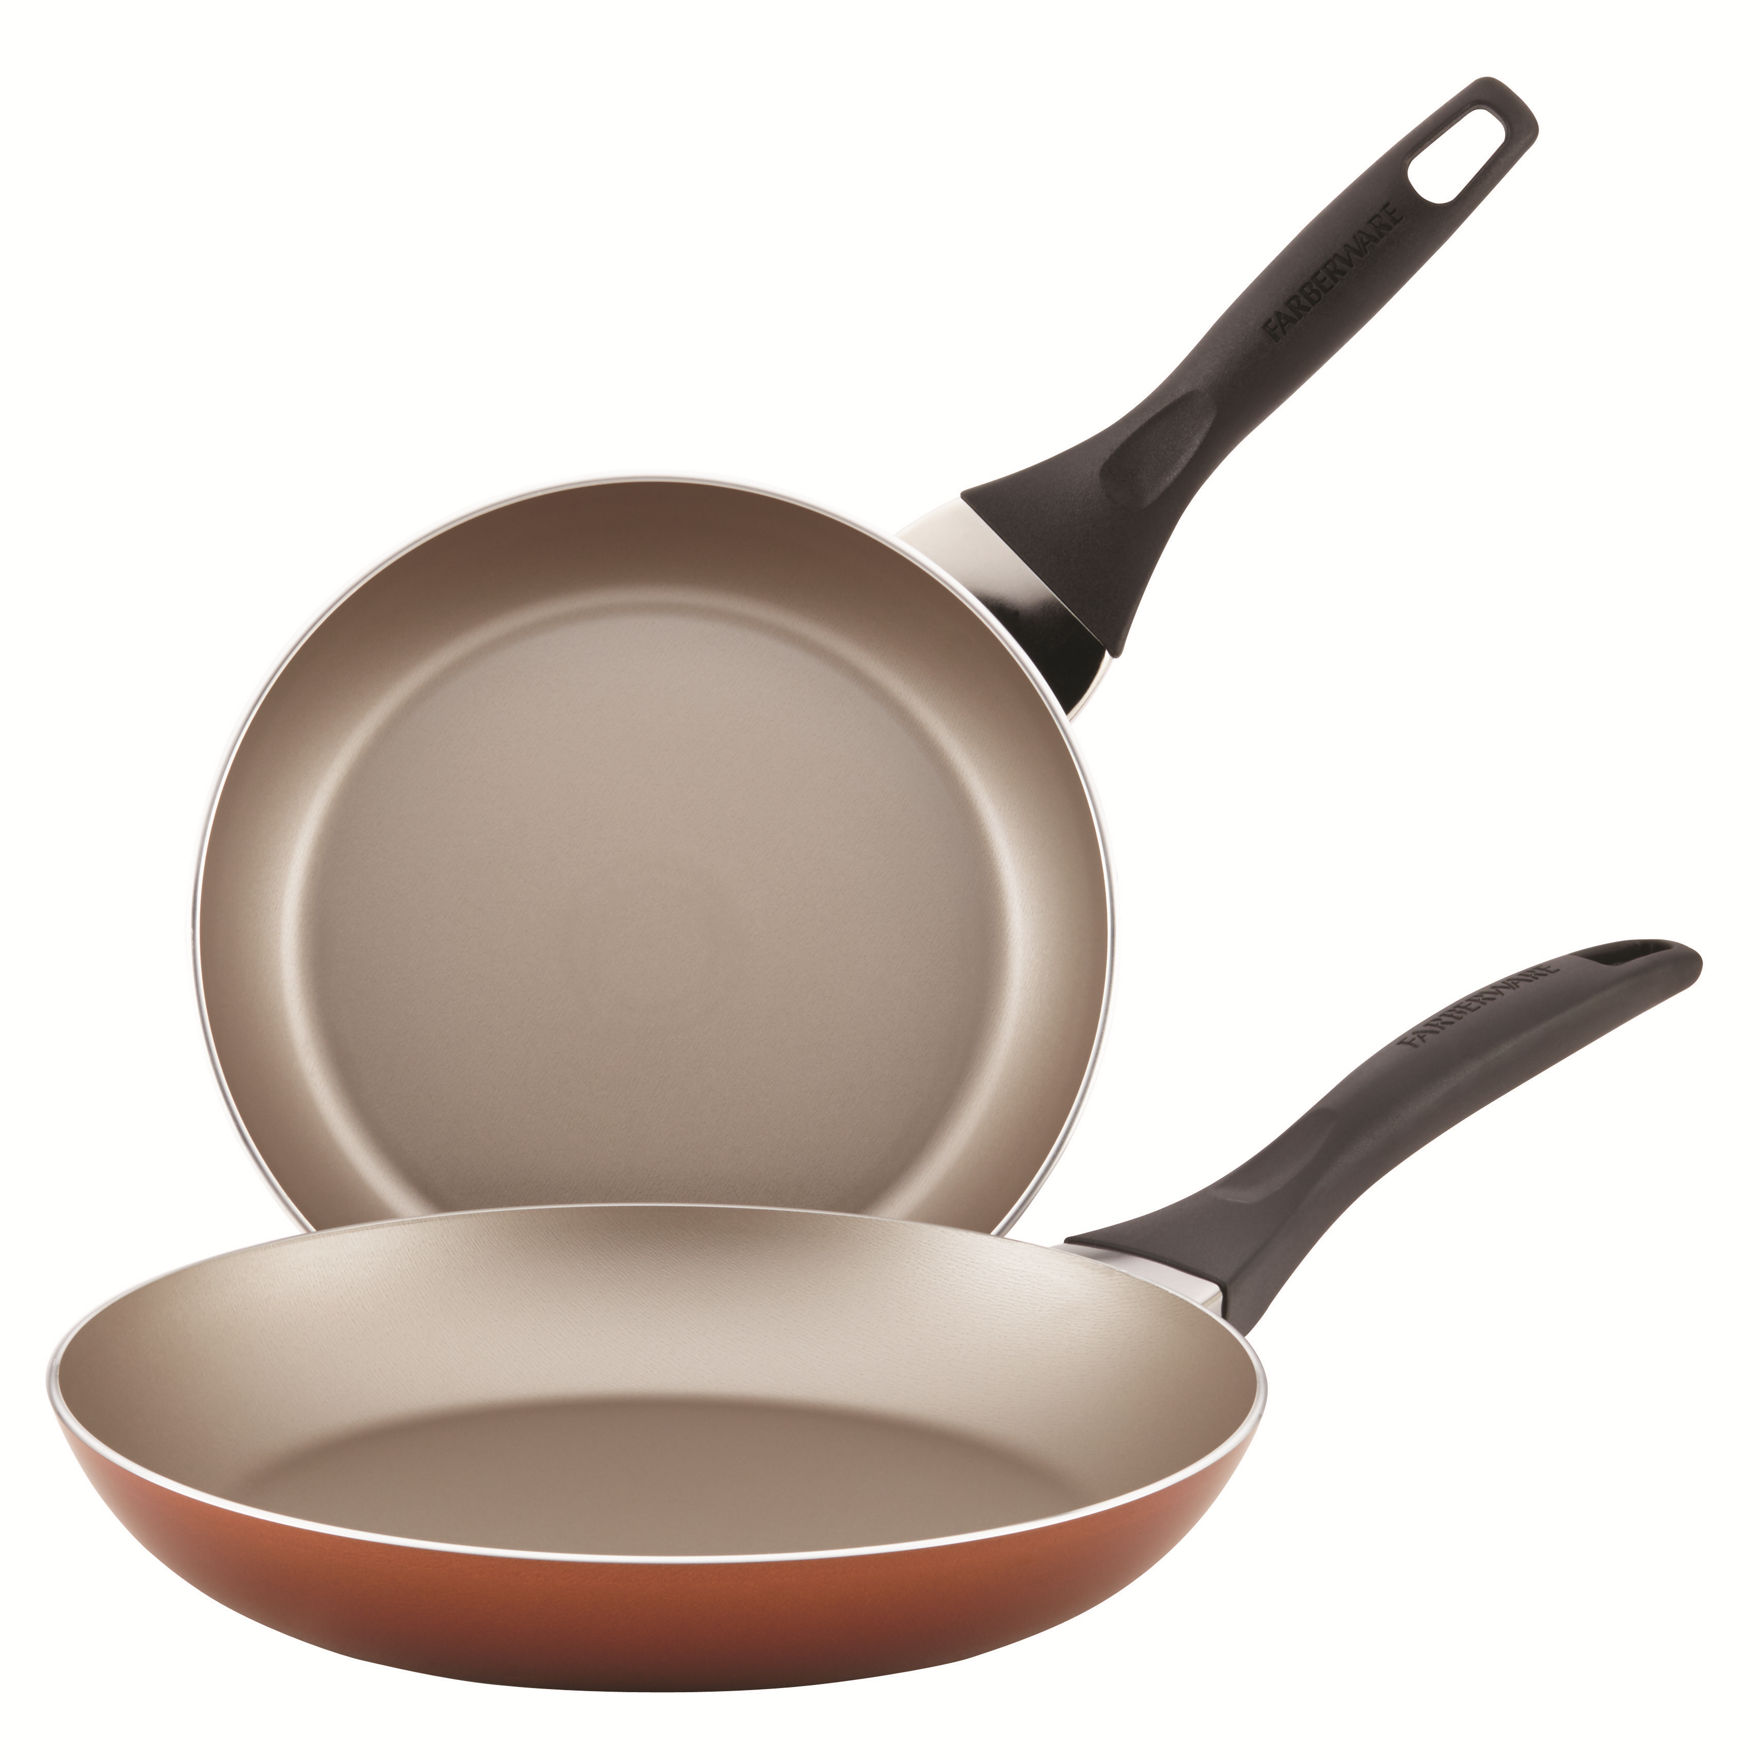 Farberware Copper Frying Pans & Skillets Cookware